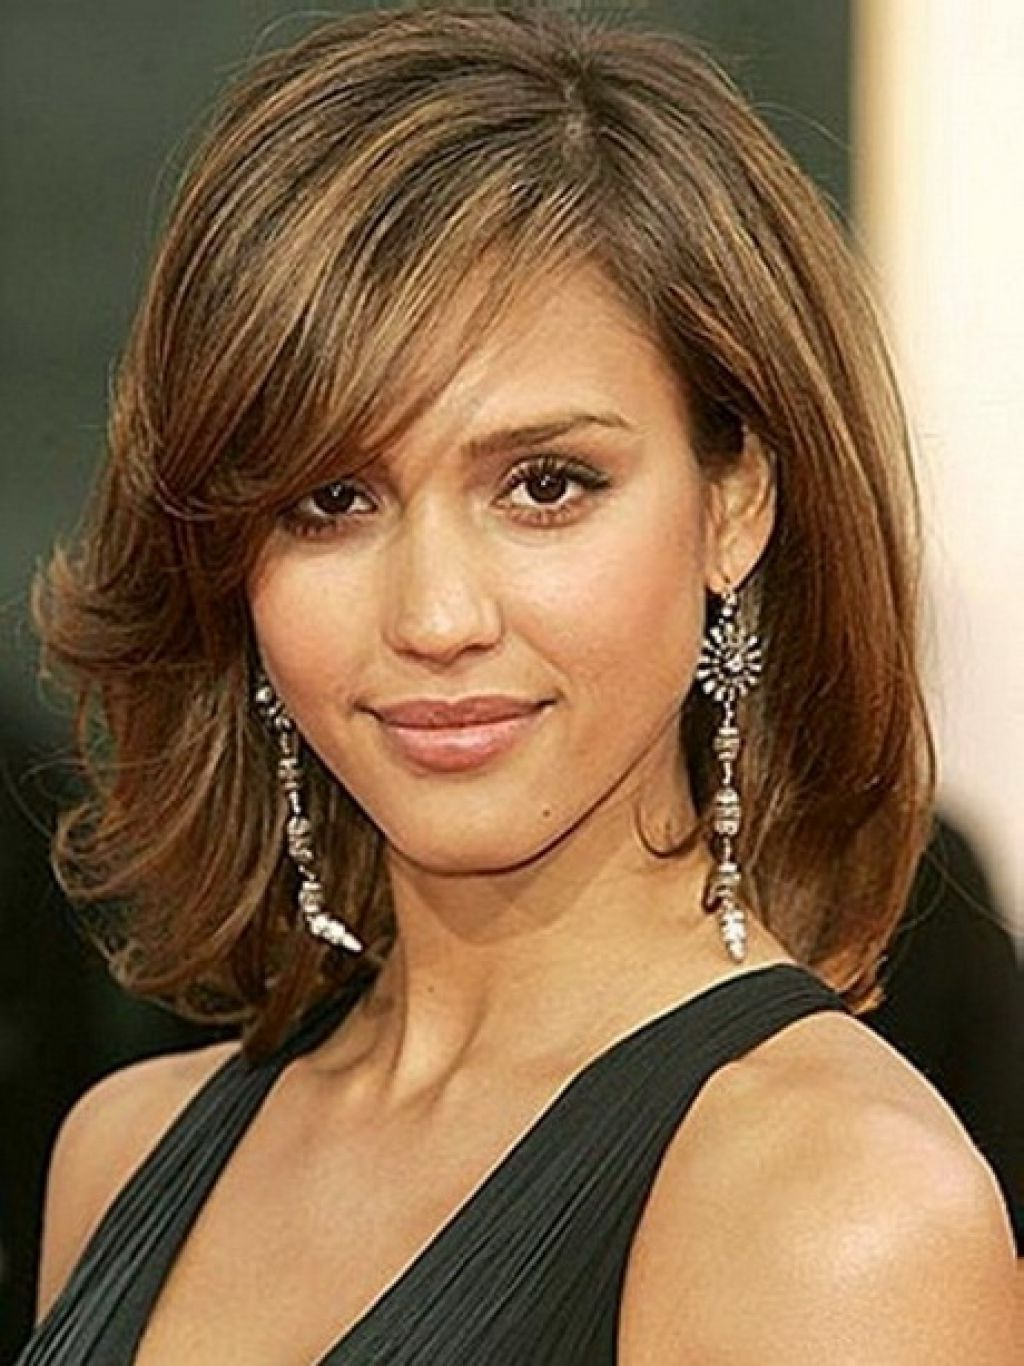 Medium Hairstyles For Round Faces And Fine Hair – Hairstyle For In Famous Medium Hairstyles For Round Faces And Fine Hair (View 19 of 20)